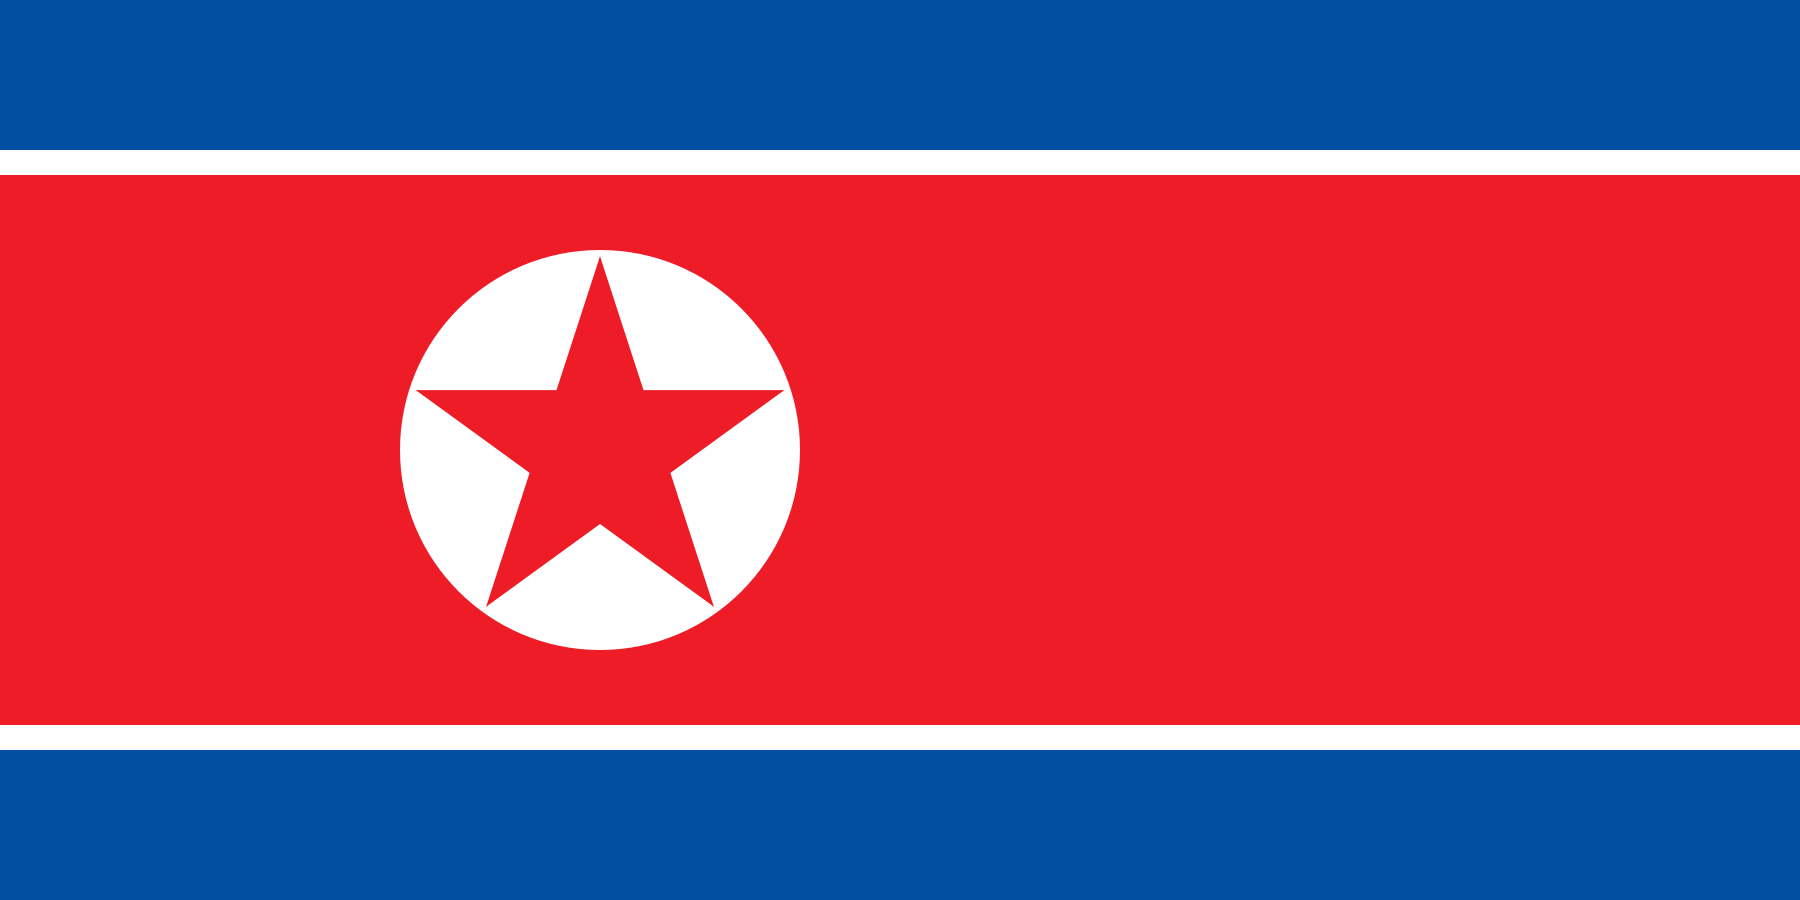 bandeira-coreia-do-norte-2